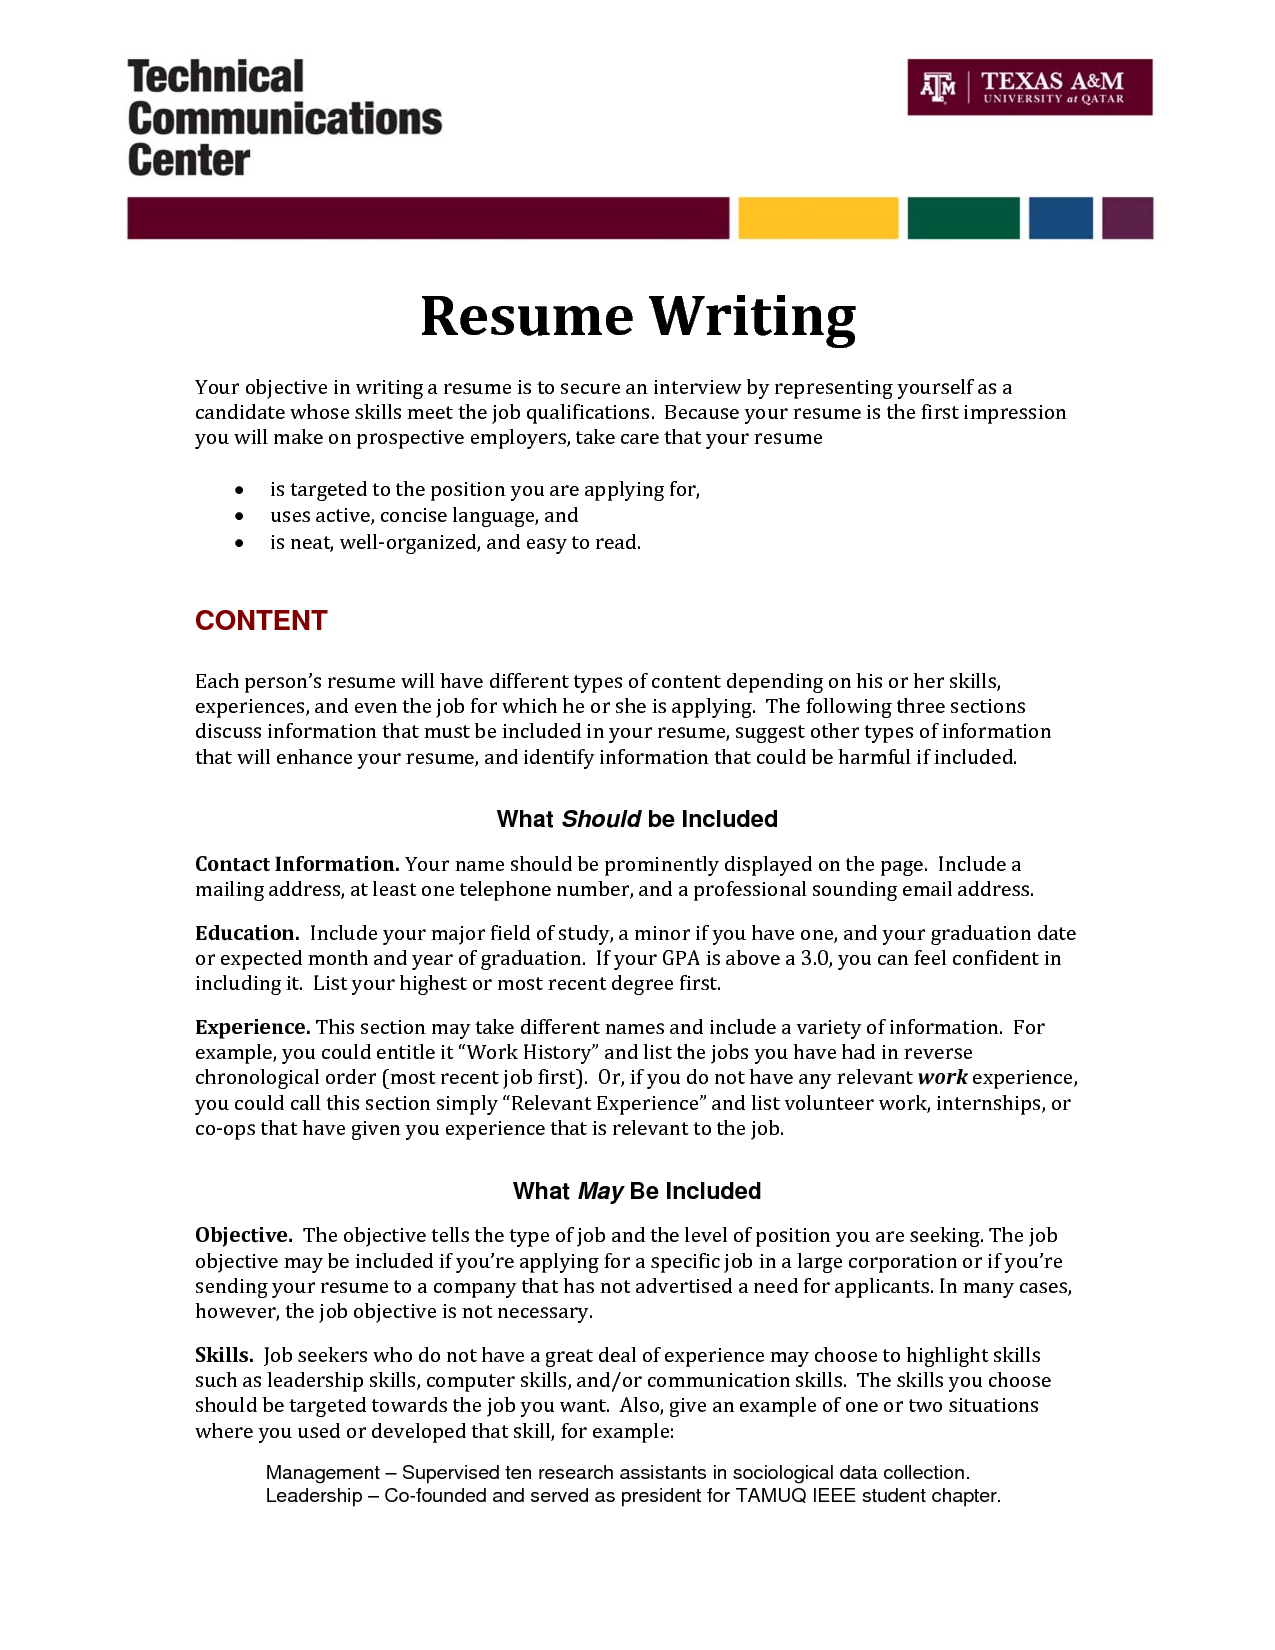 what jobs can i get with a professional writing degree